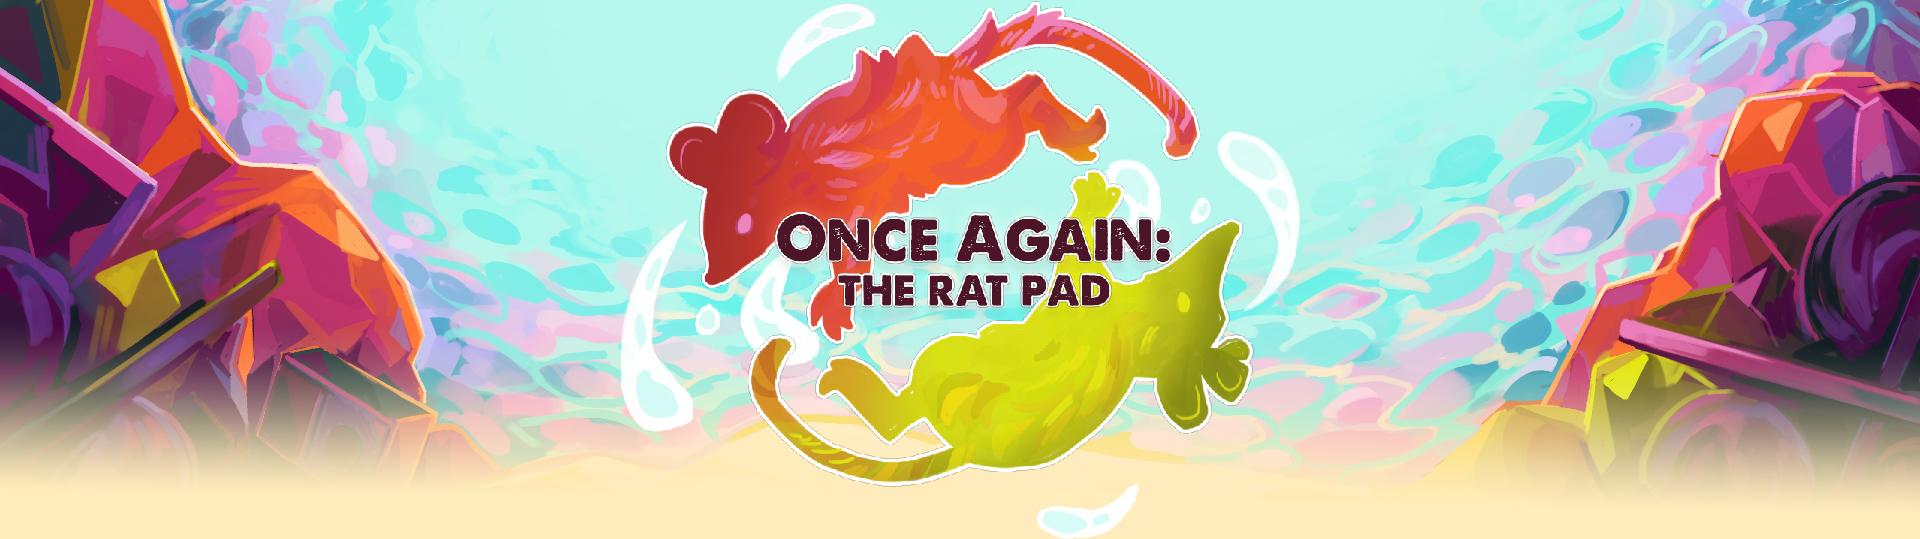 Once Again: The Rat Pad